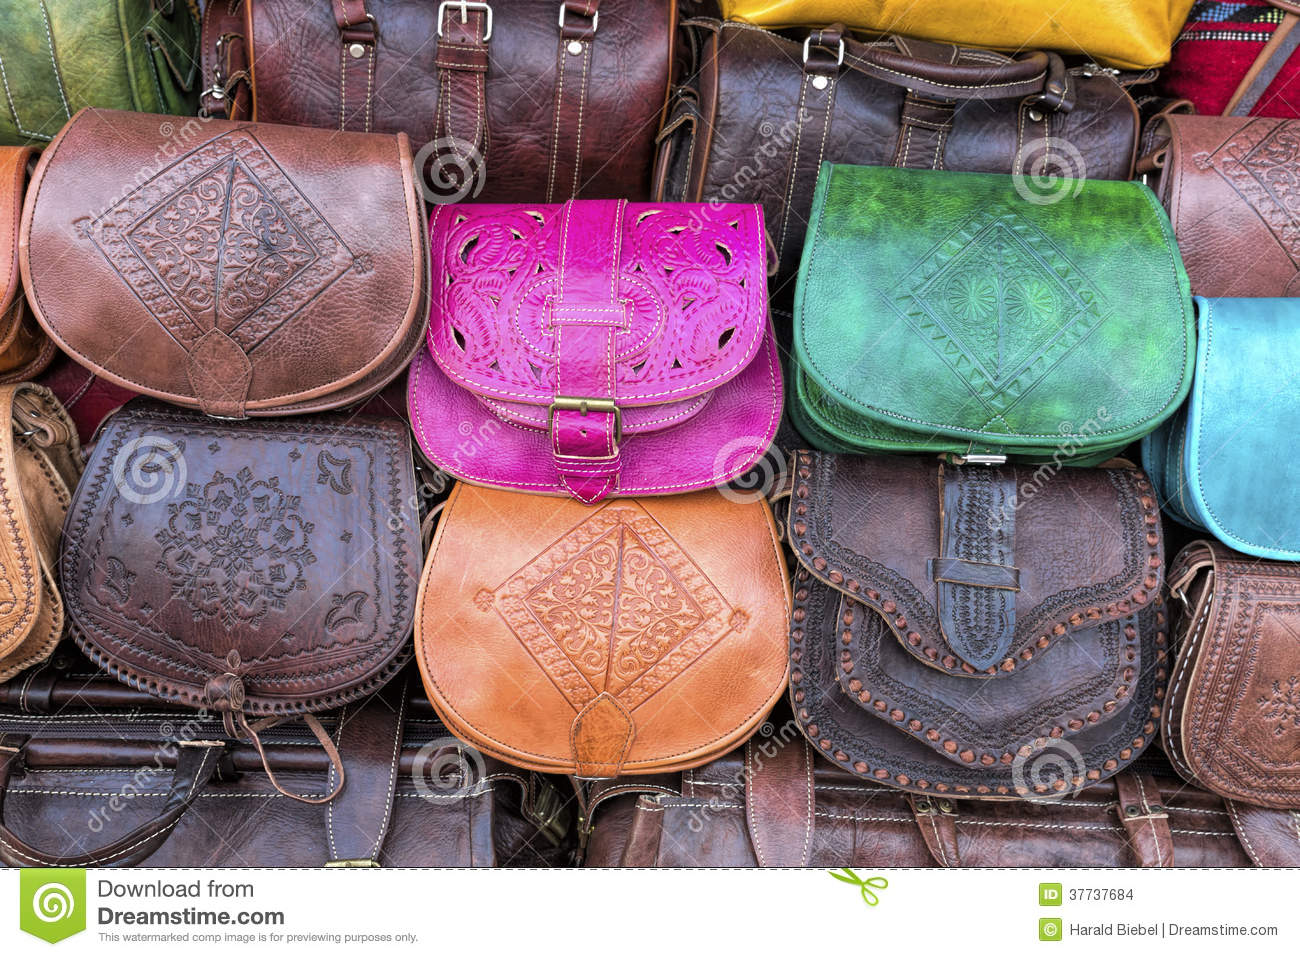 Handmade Leather Bags, Morocco Stock Images - Image: 37737684